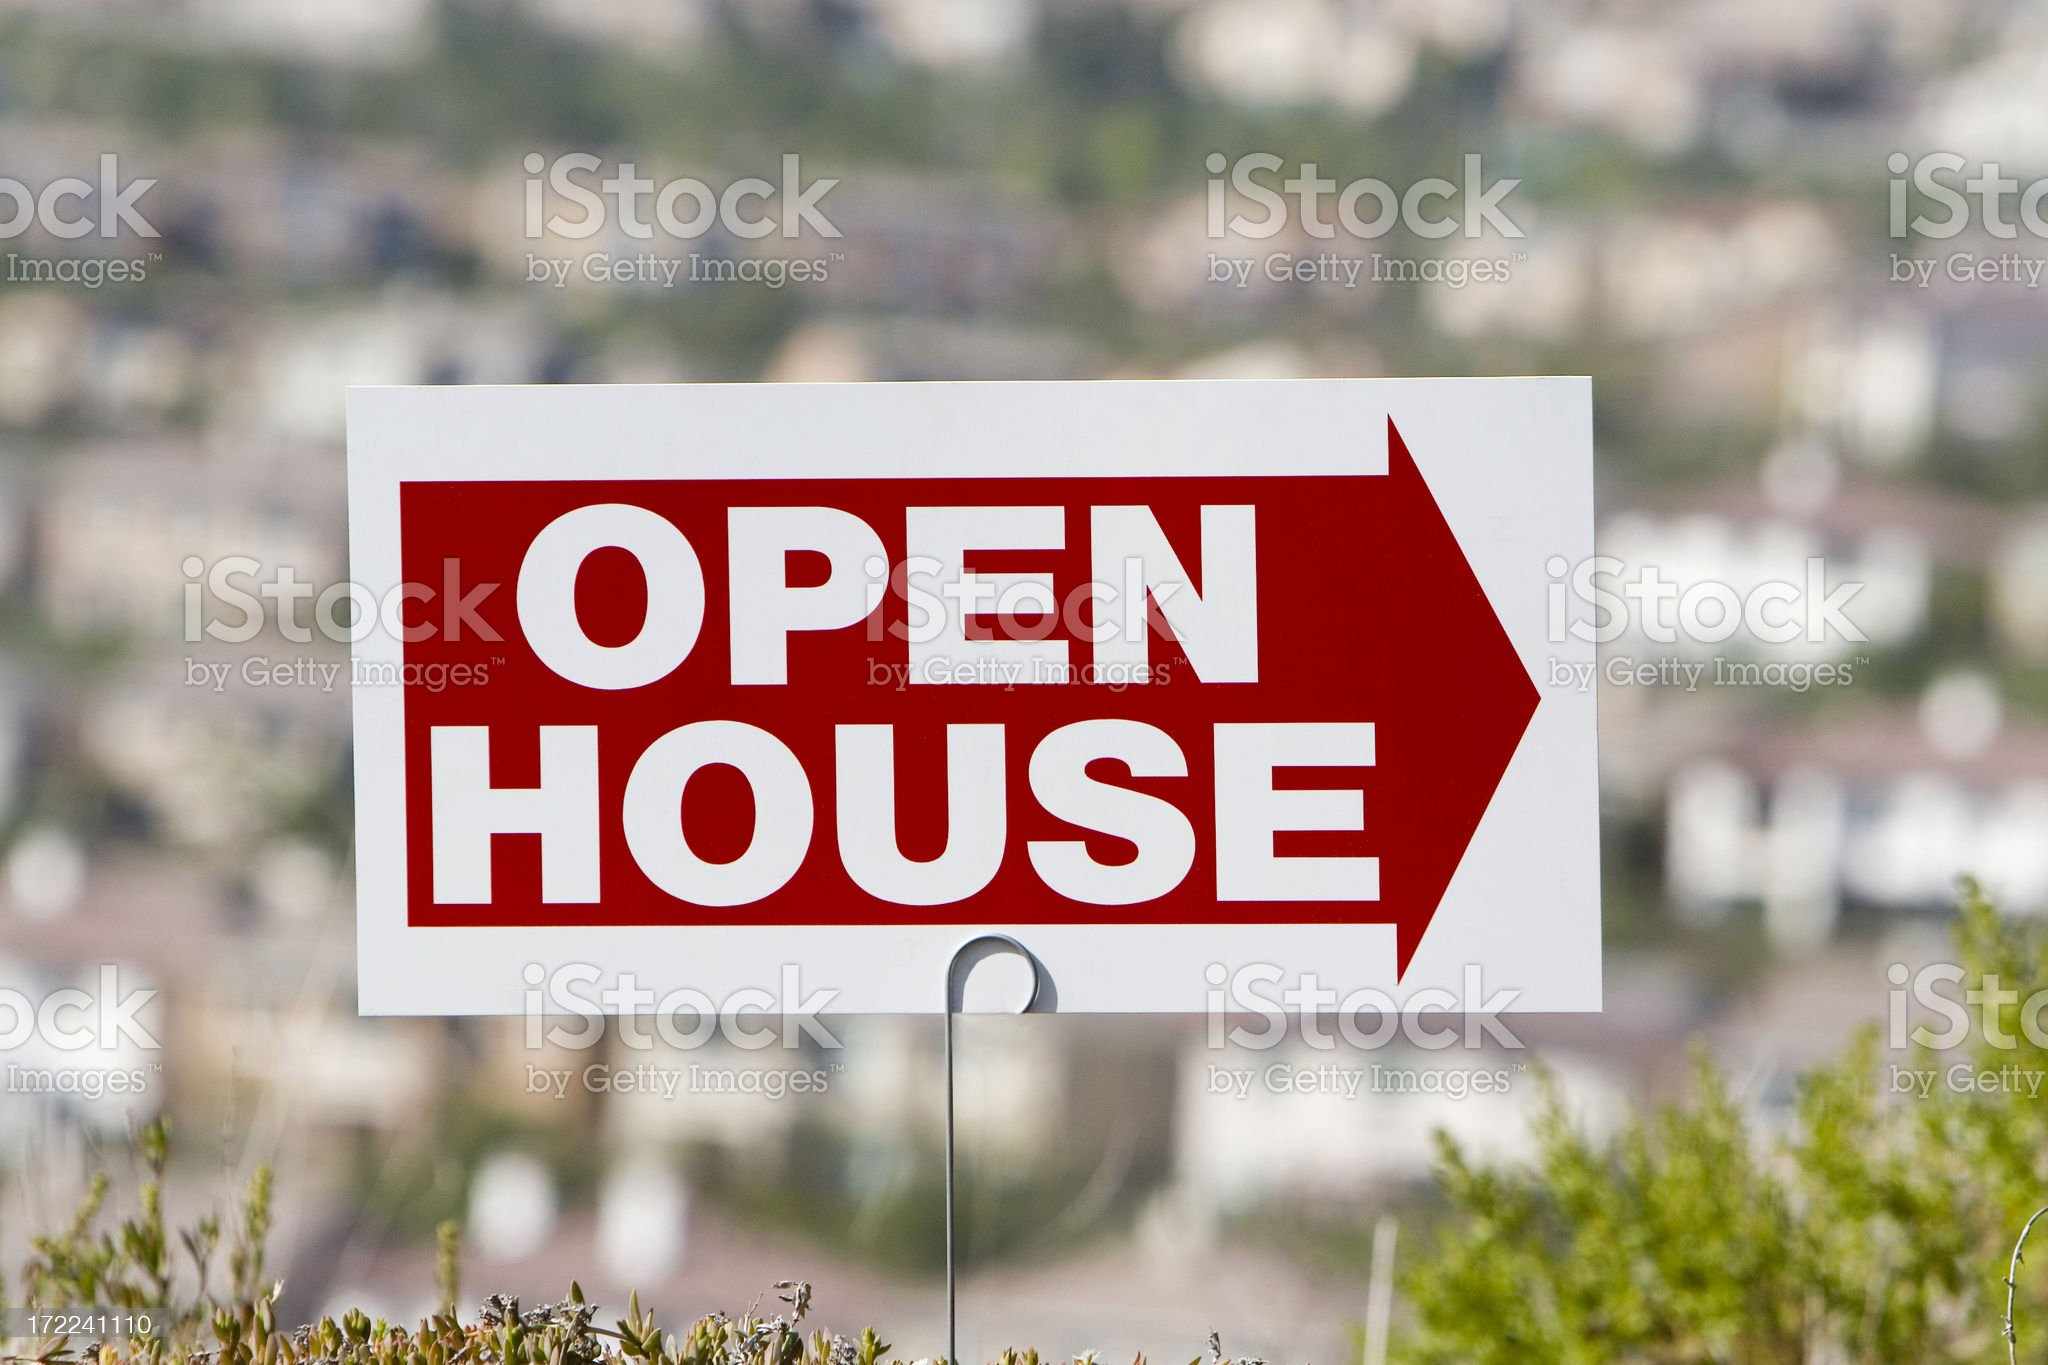 open house #1 royalty-free stock photo